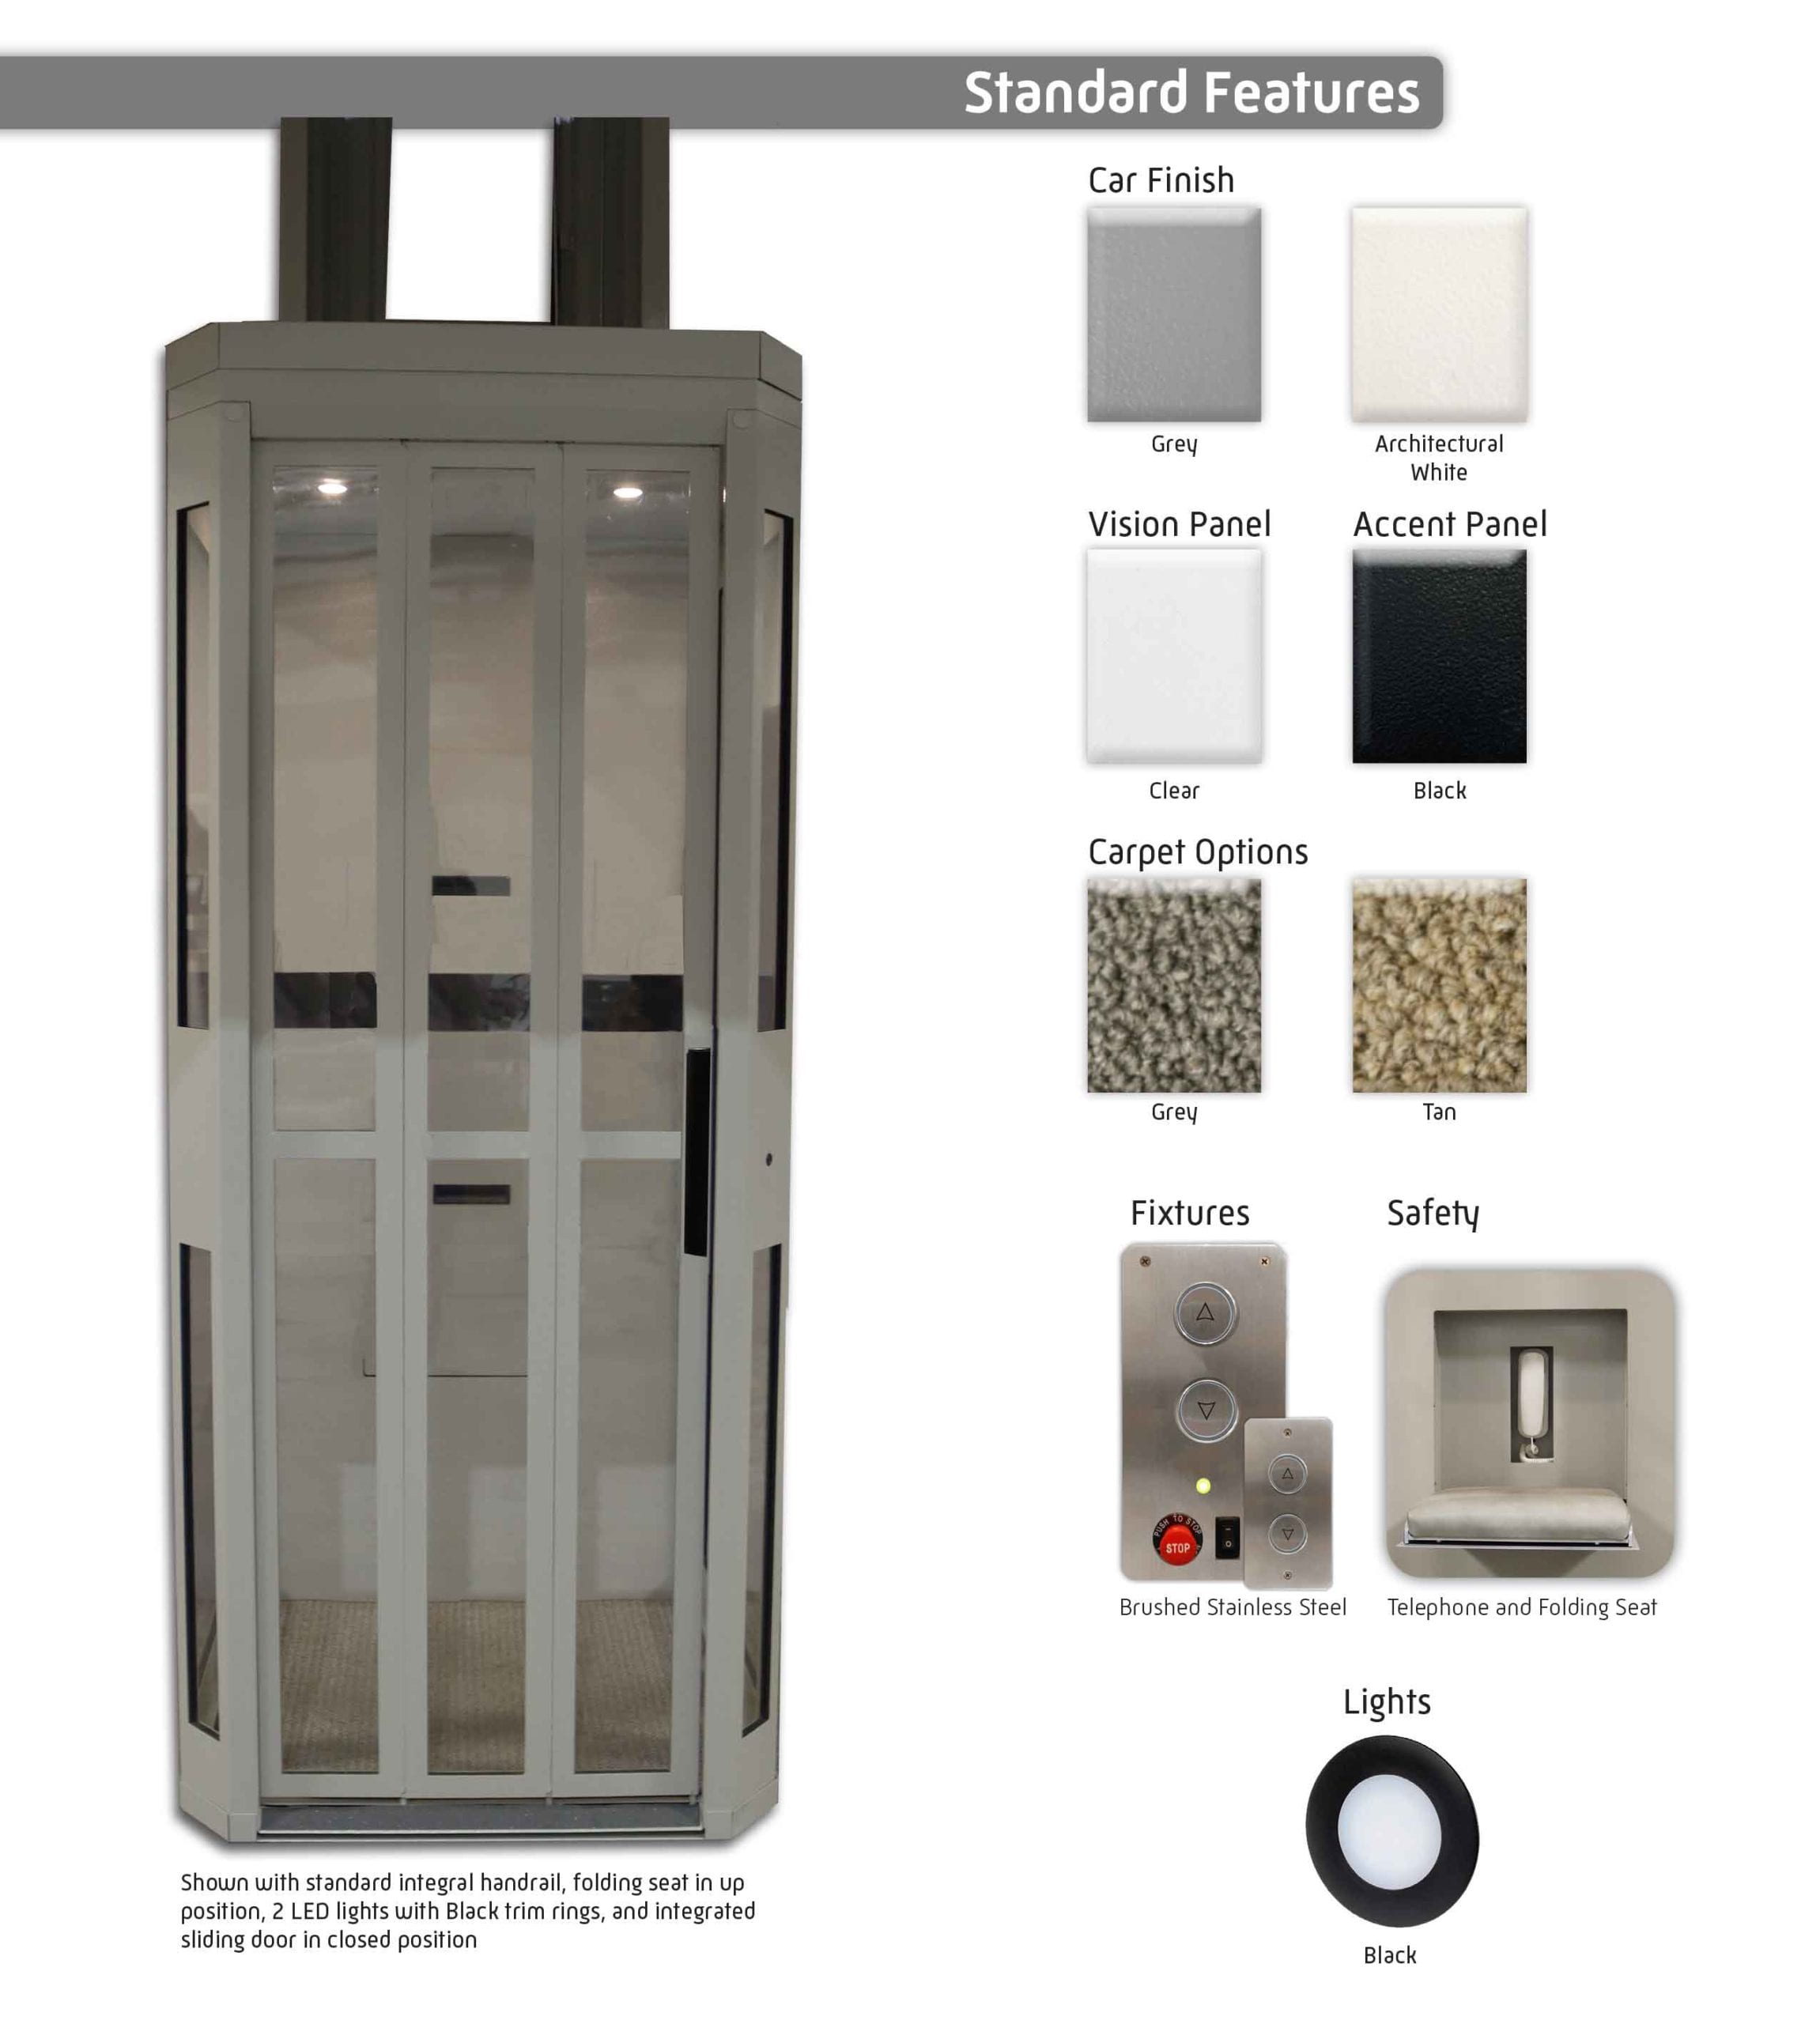 Symmetry Shaftless Home Elevator Standard Features